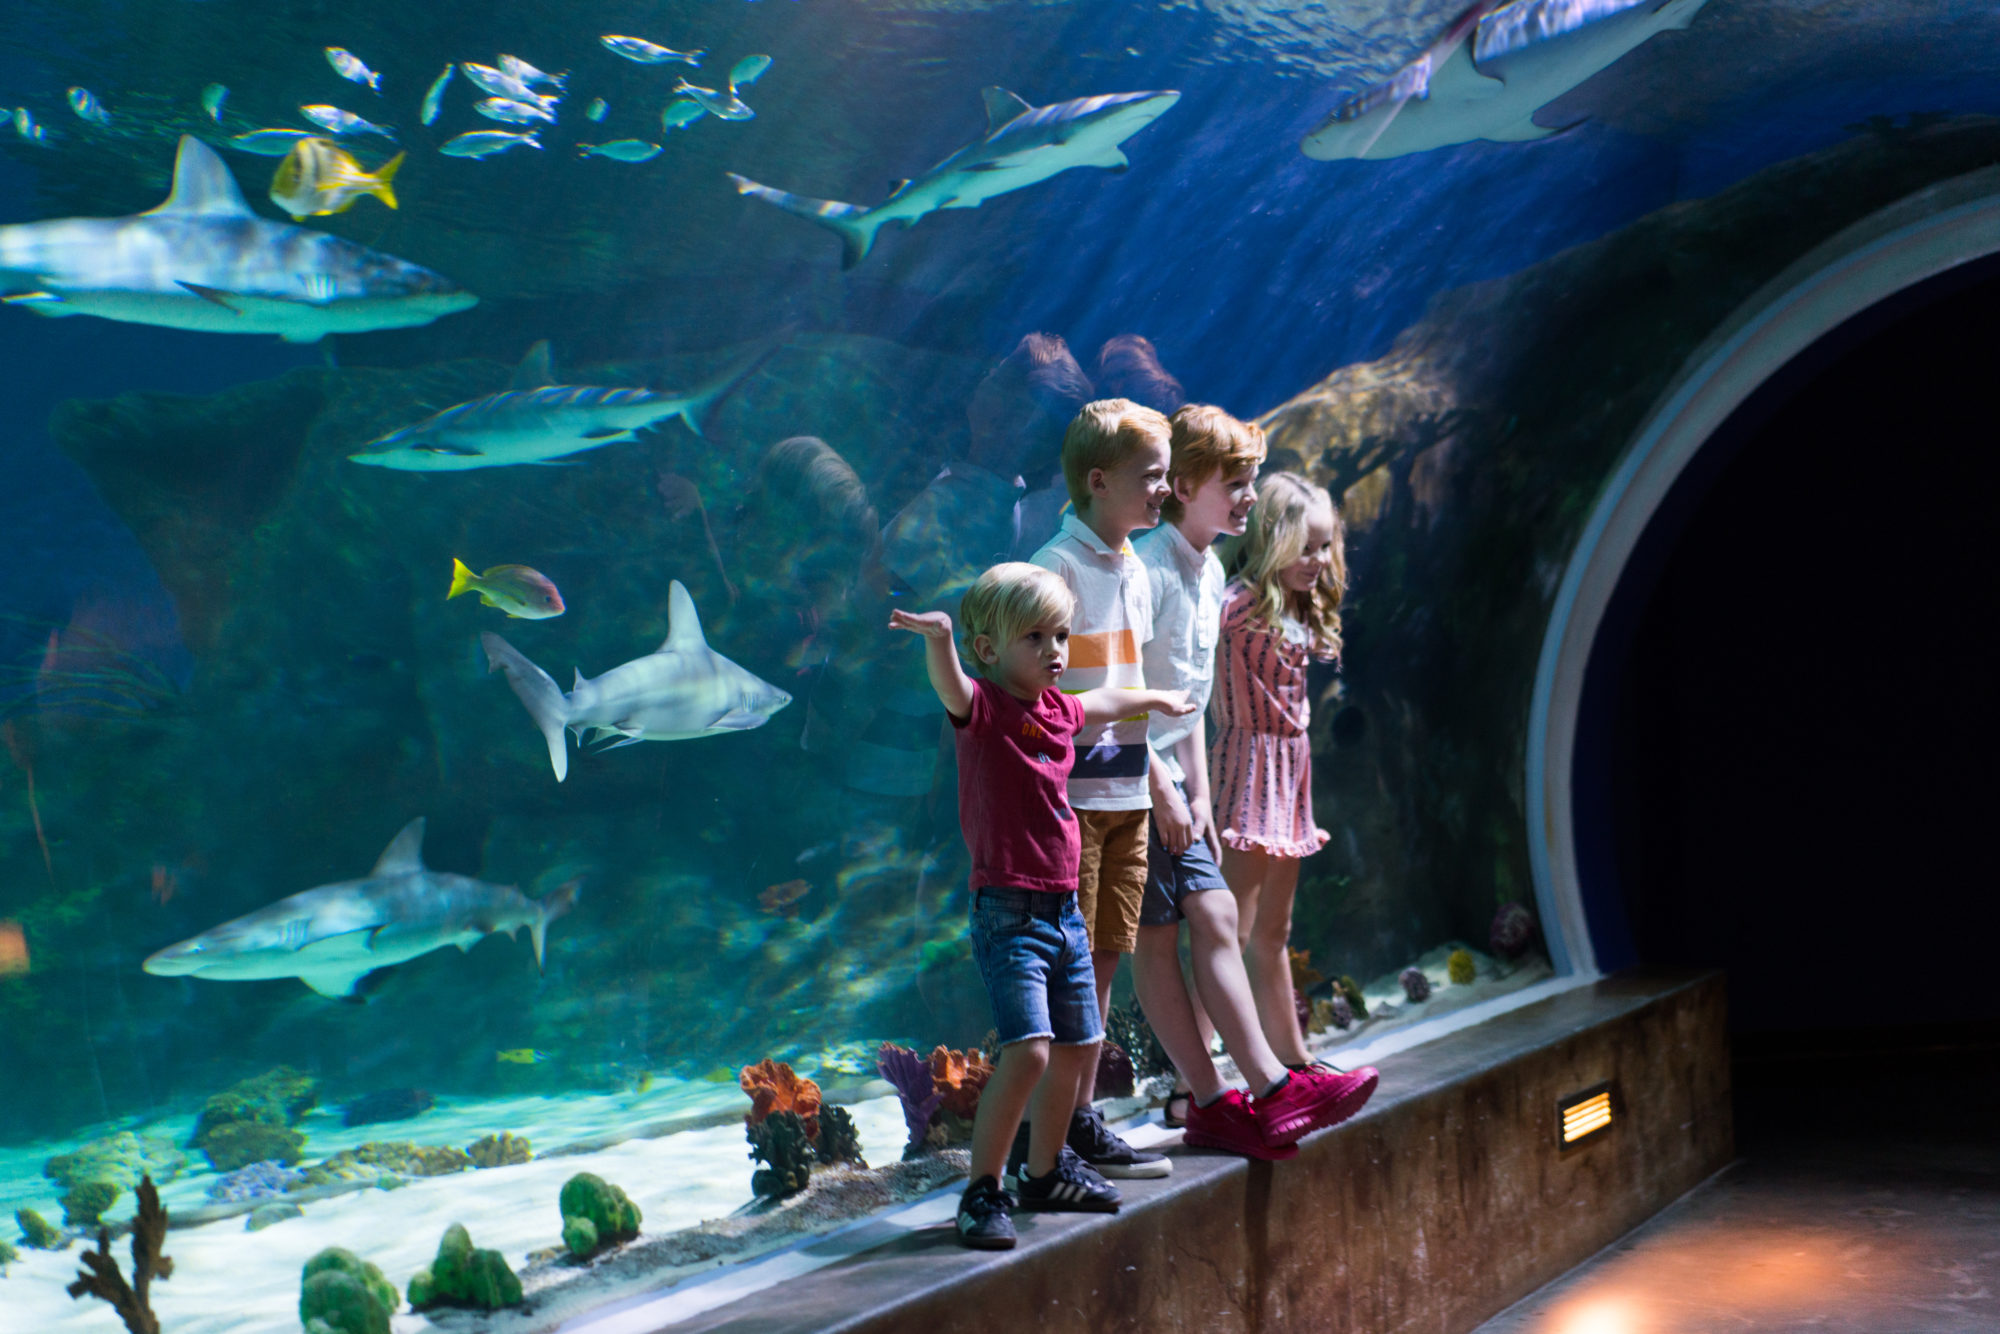 In the April Founder Series, Brent Anderson shares how he achieved a life-long dream of opening the Loveland Living Planet Aquarium.